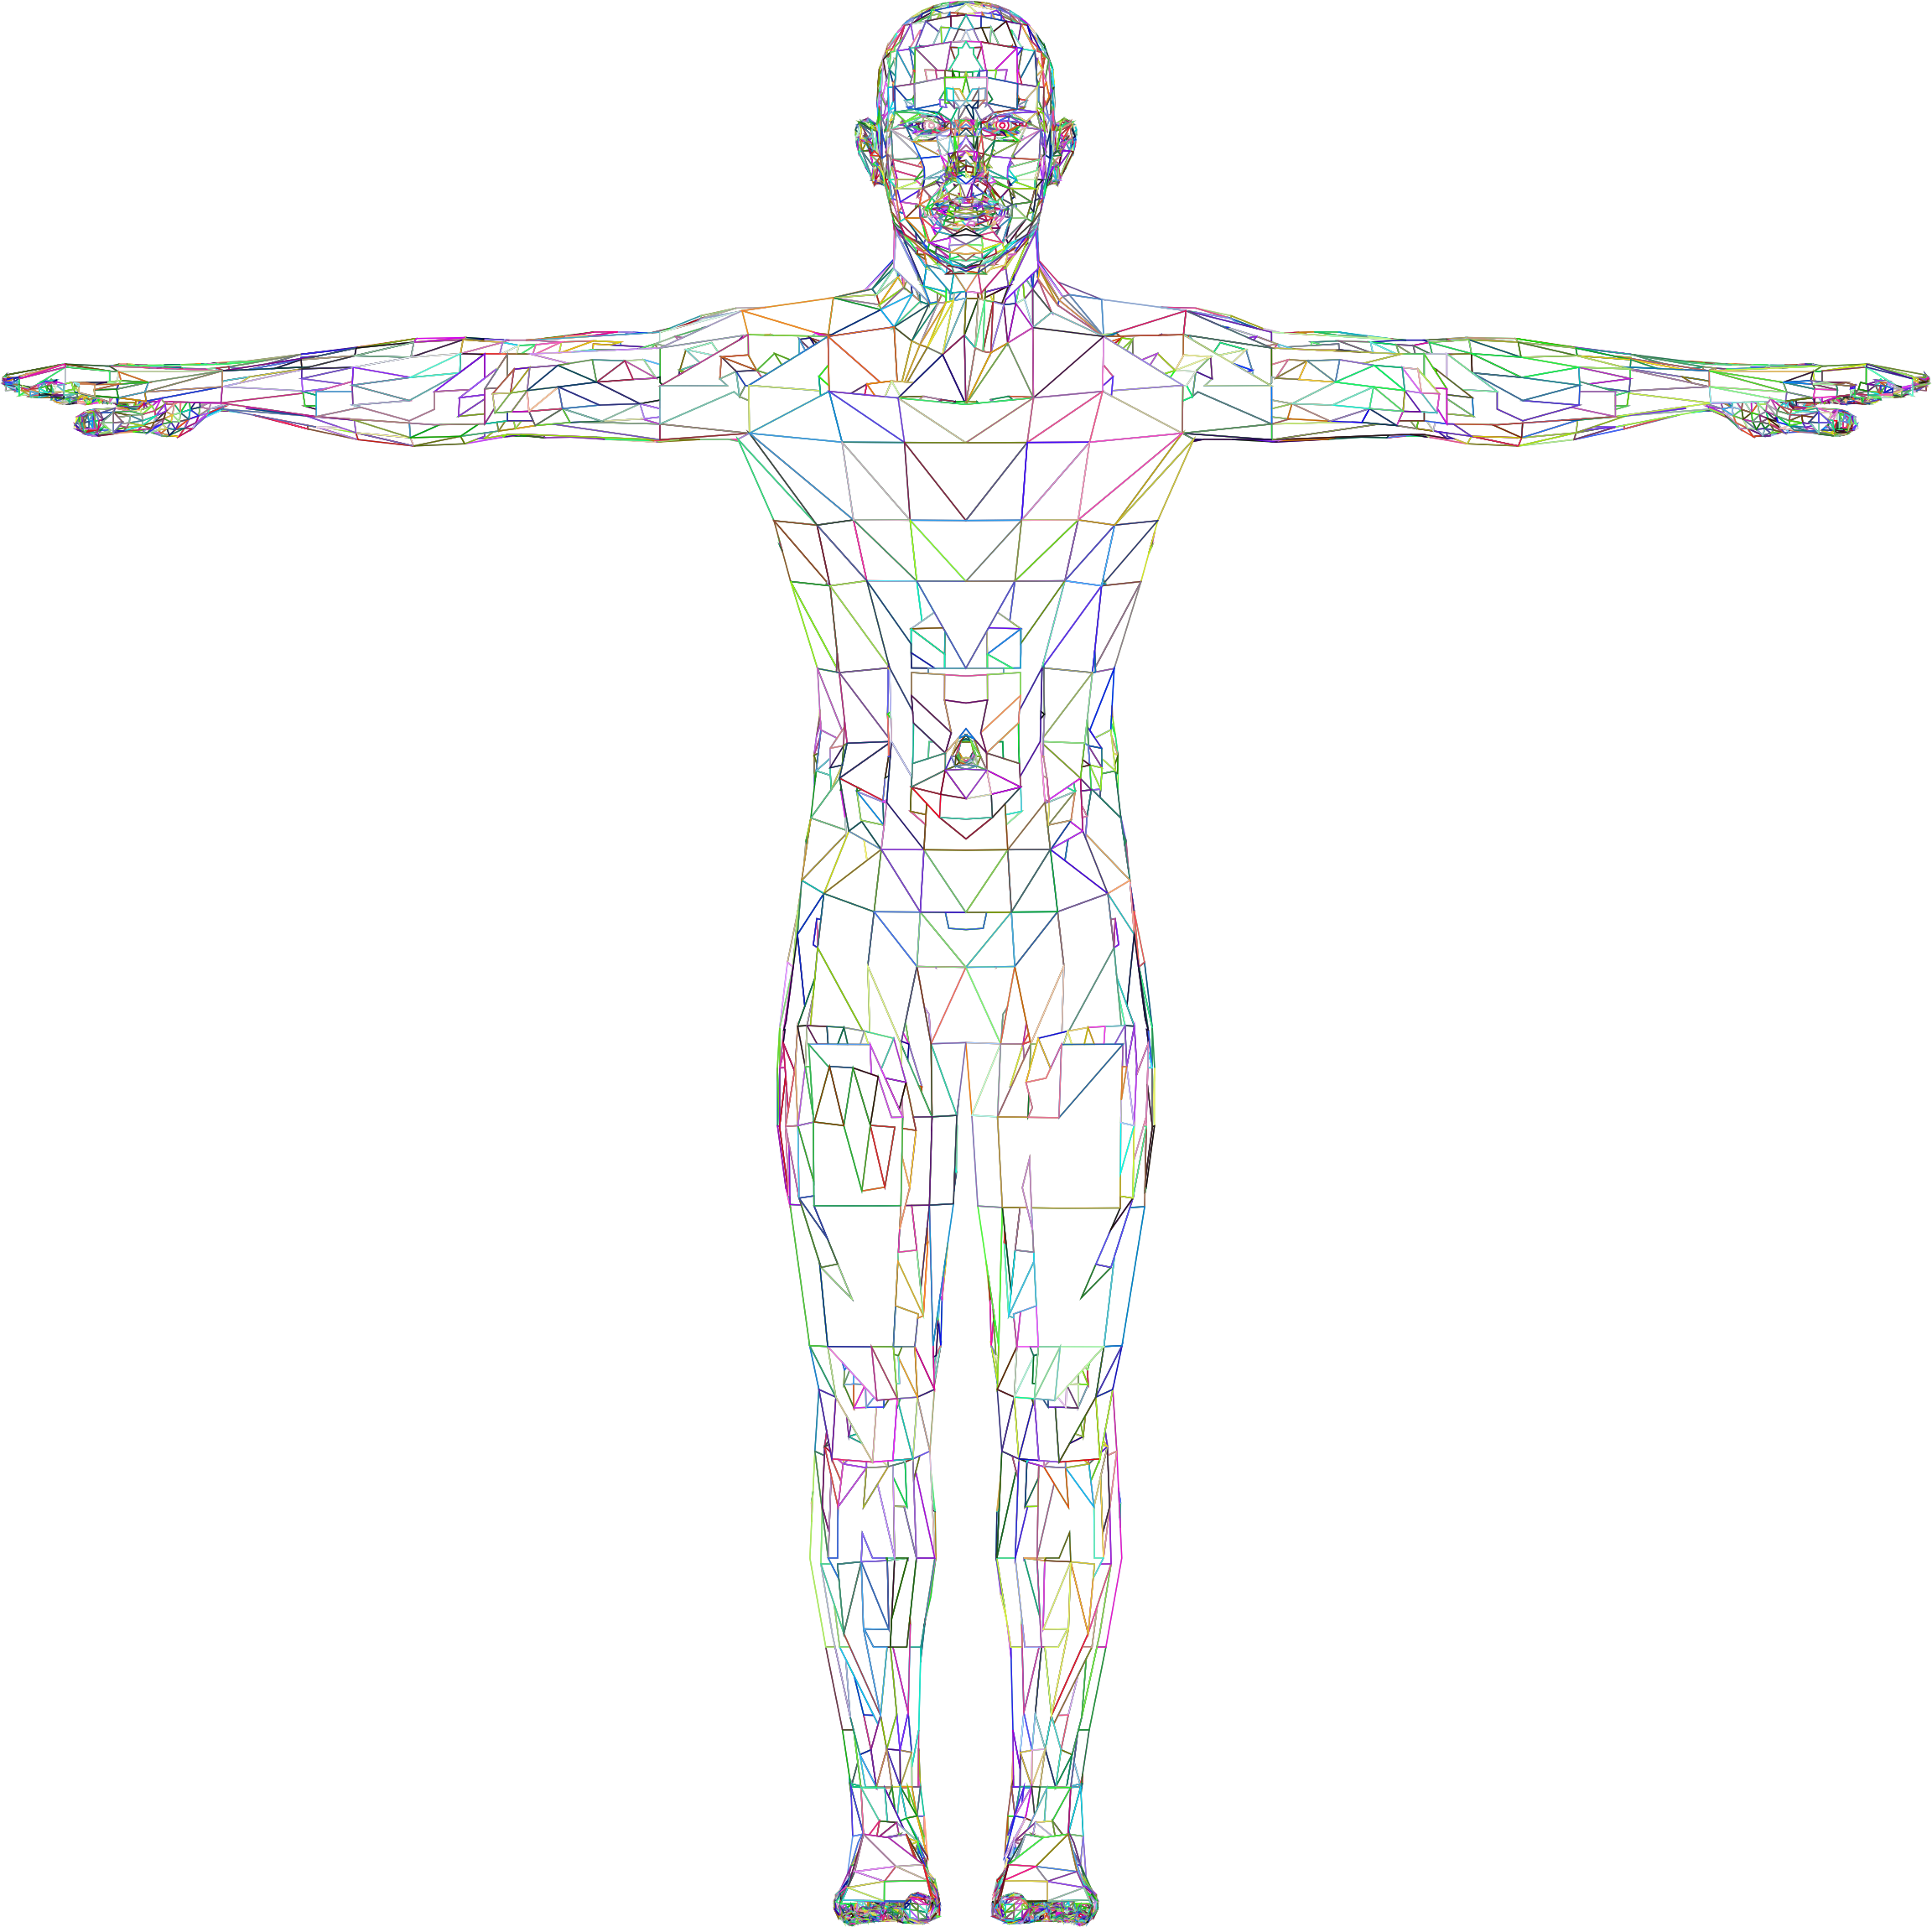 Detailed Low Poly Man Wireframe Prismatic by GDJ